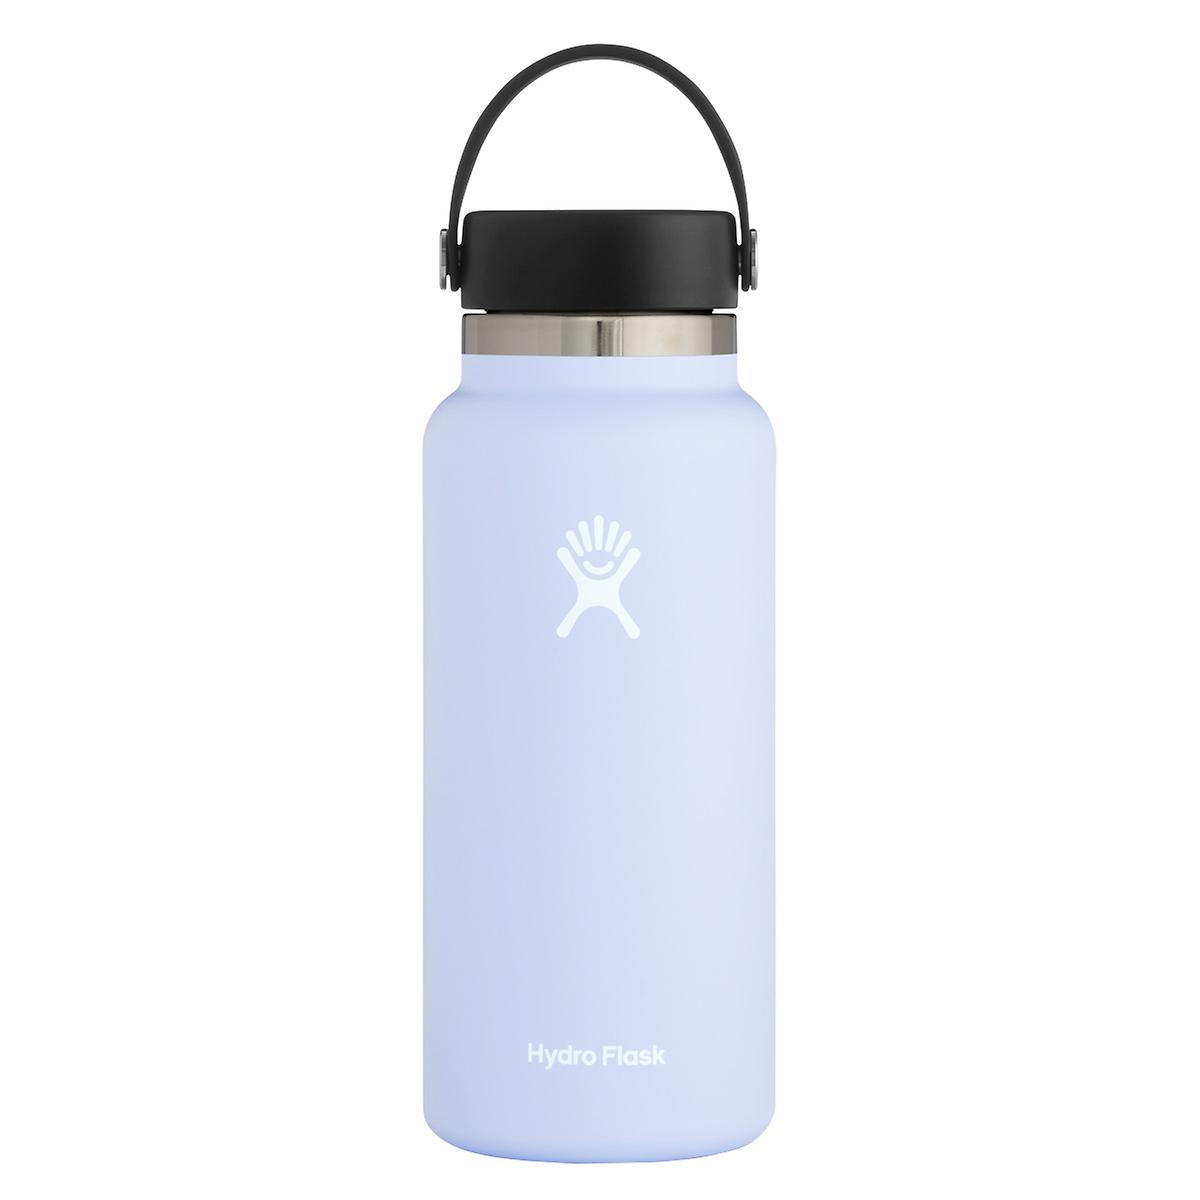 Christmas gifts for dad, fog color water bottle